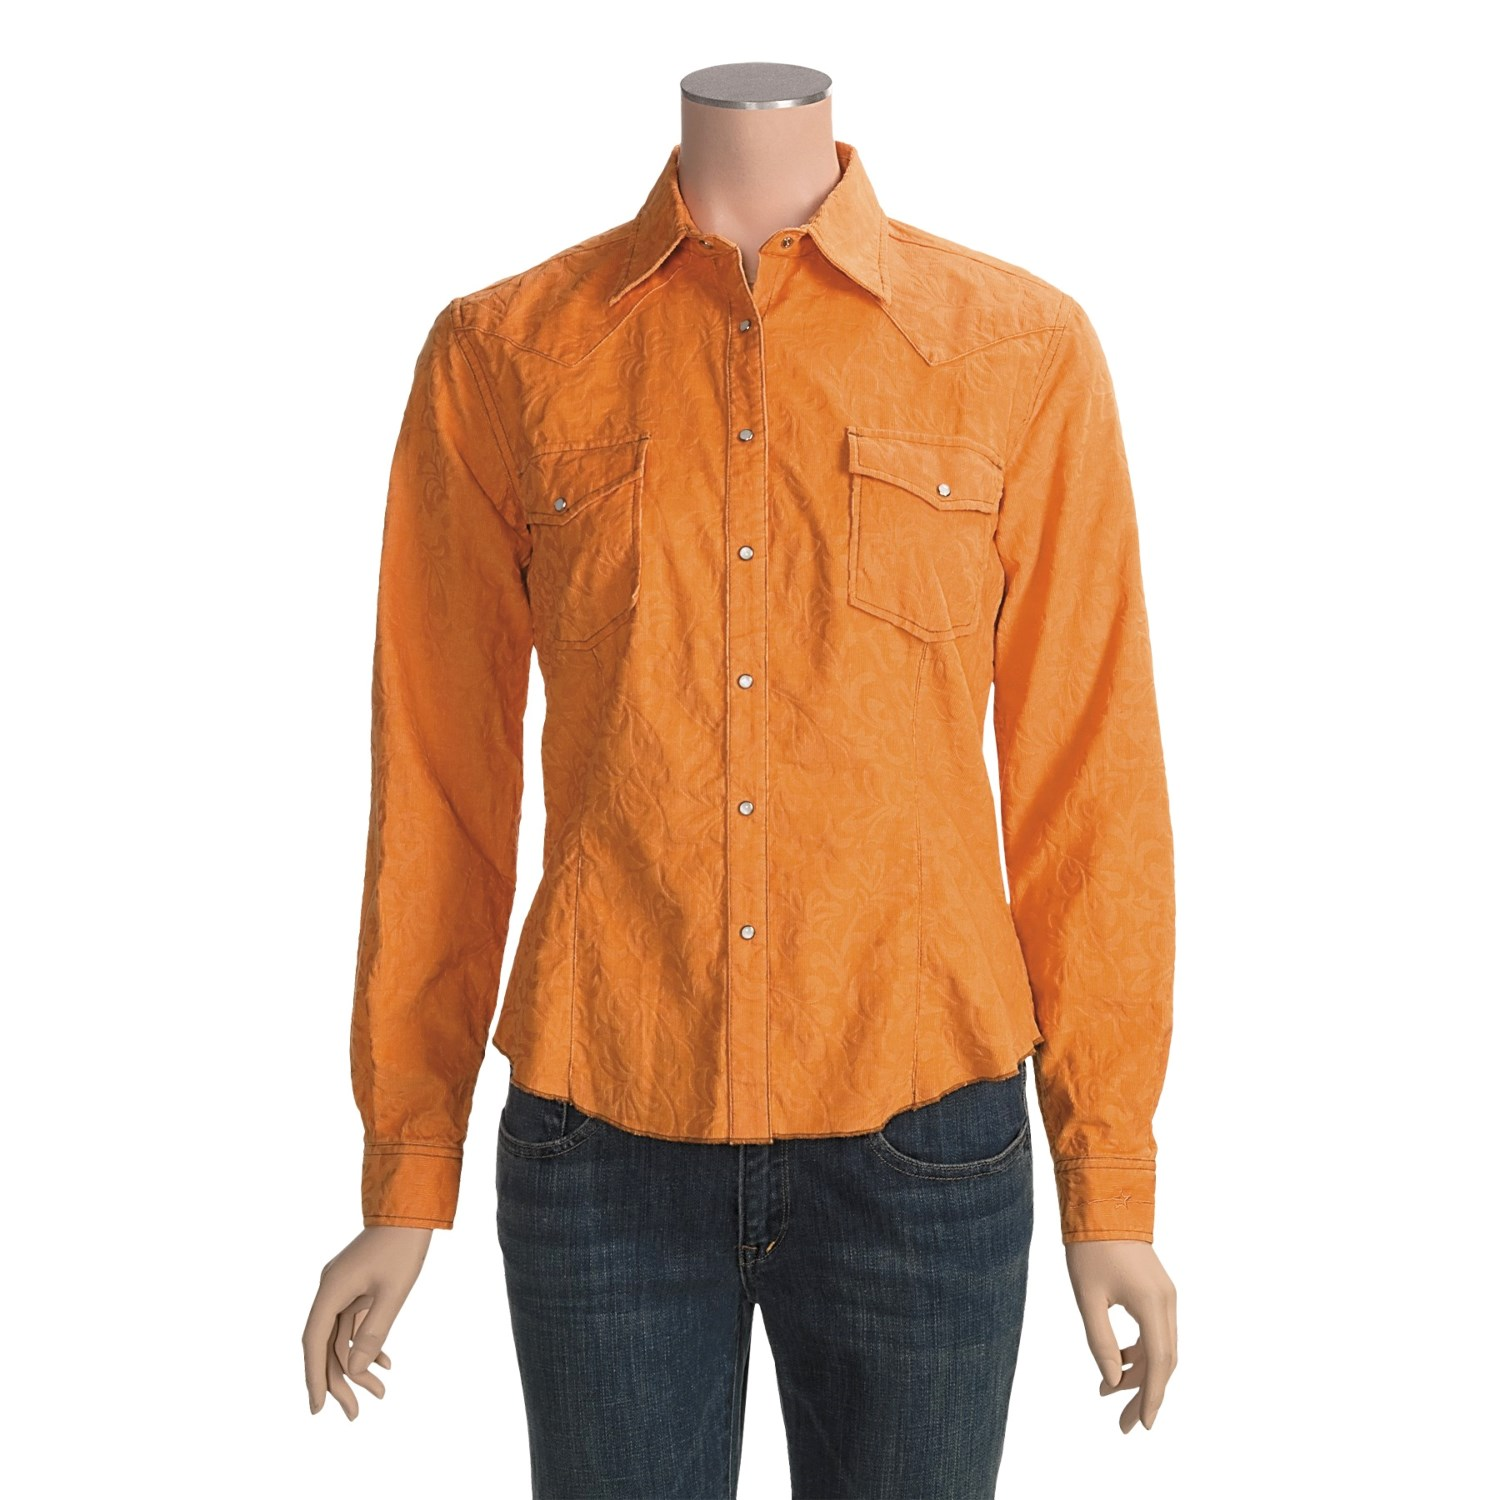 ryan michael western corduroy shirt for women 3162r